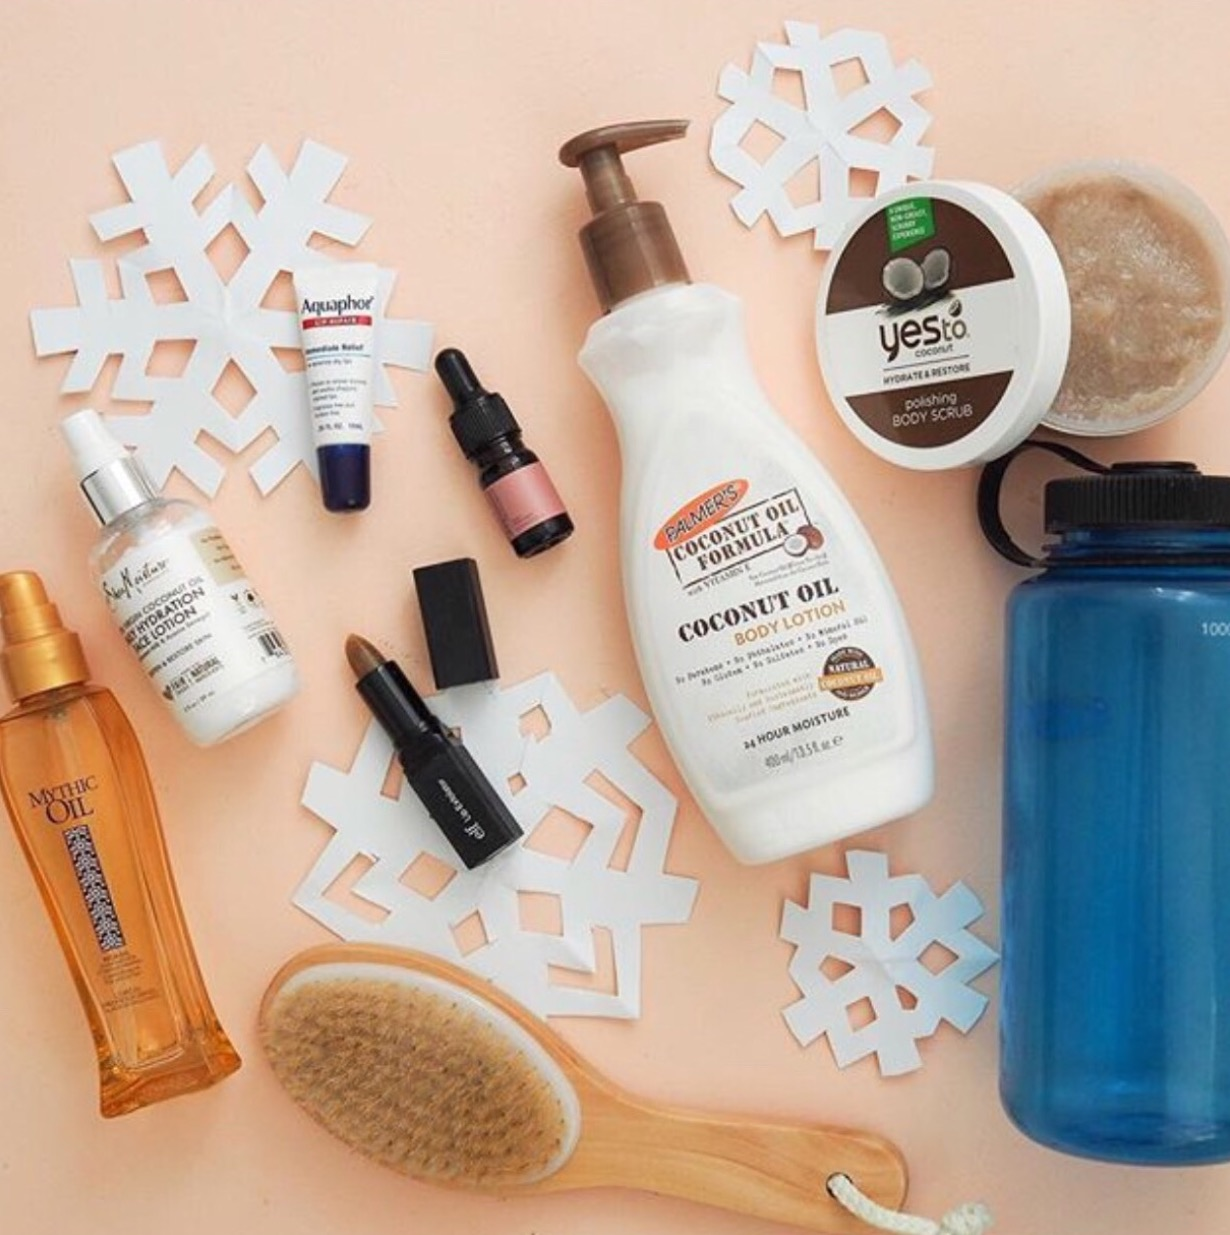 Our Favorite Skincare Products for Dry, Itchy Winter Skin